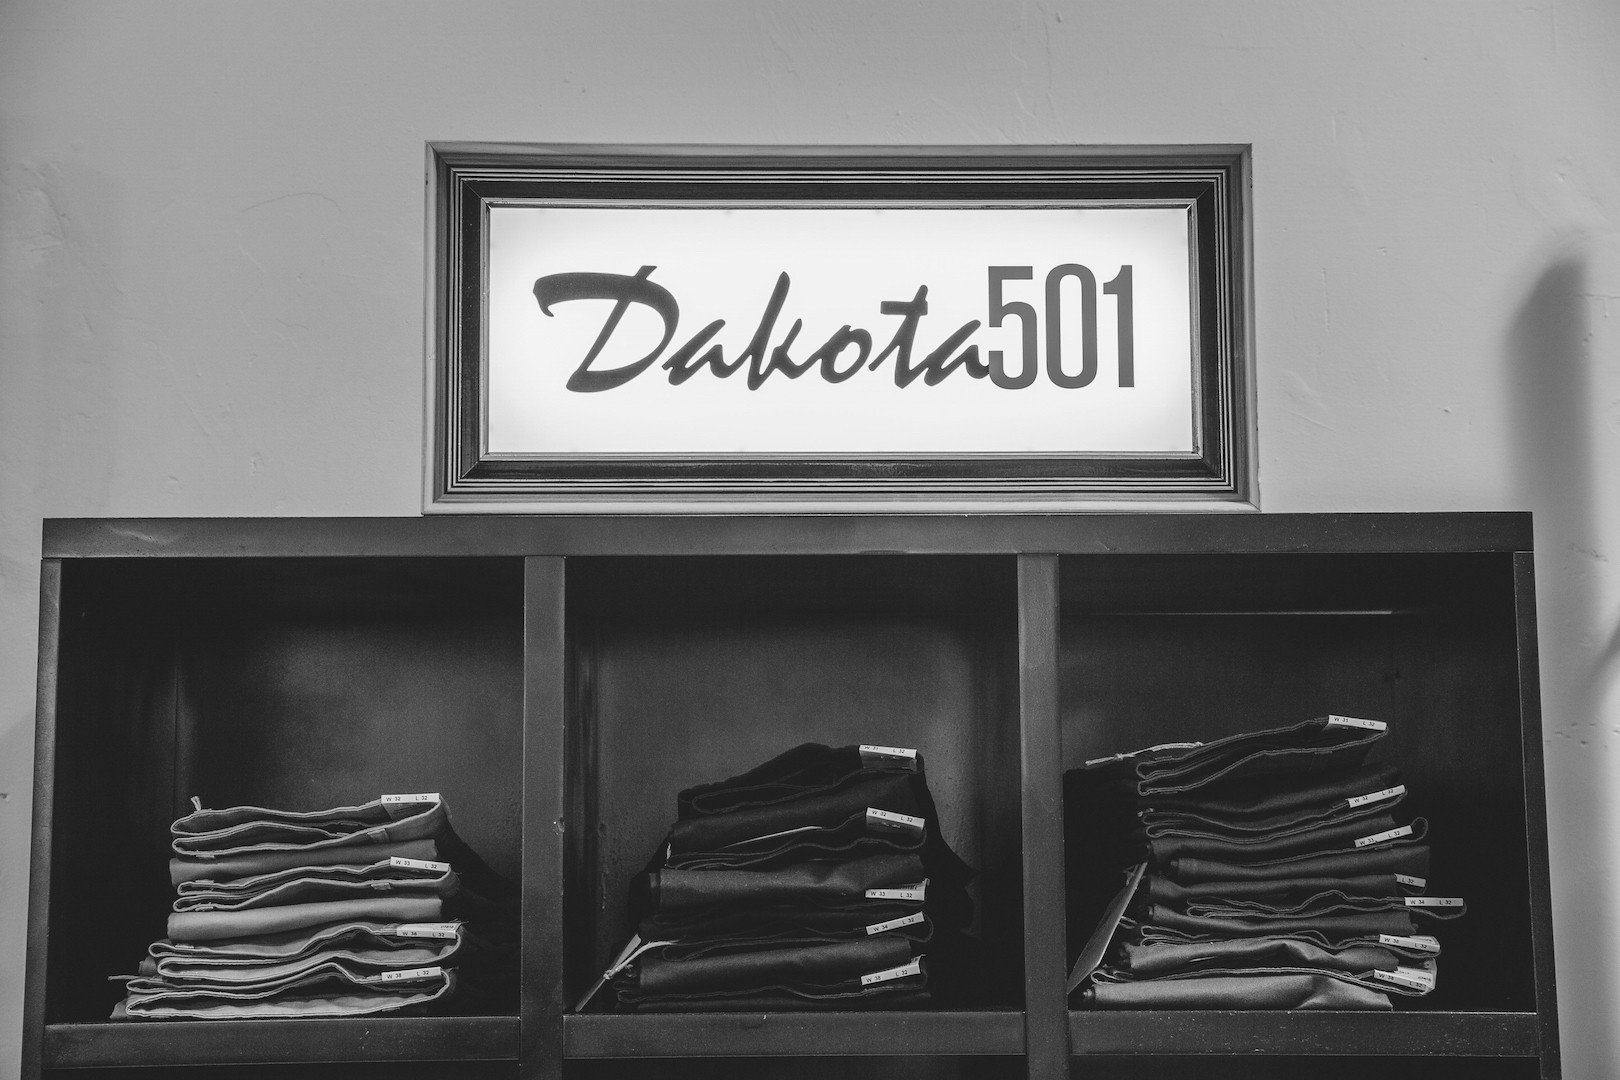 Dakota501 Free Shipping